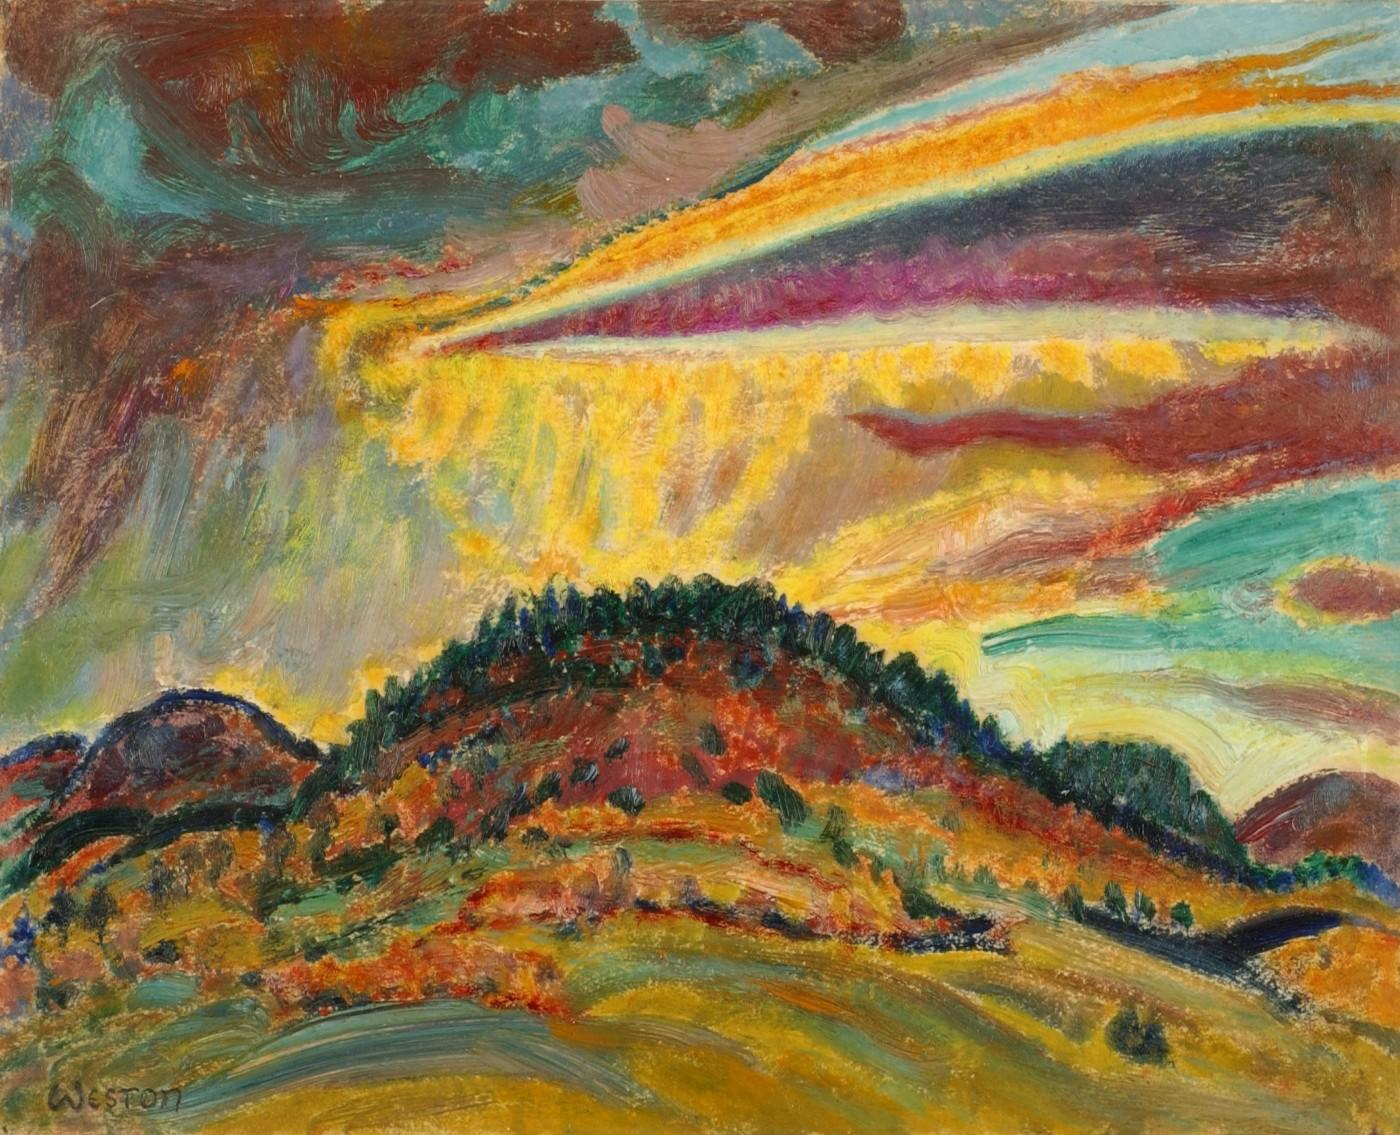 Harold Weston, Sunset Over Baxter Mountain, 1920